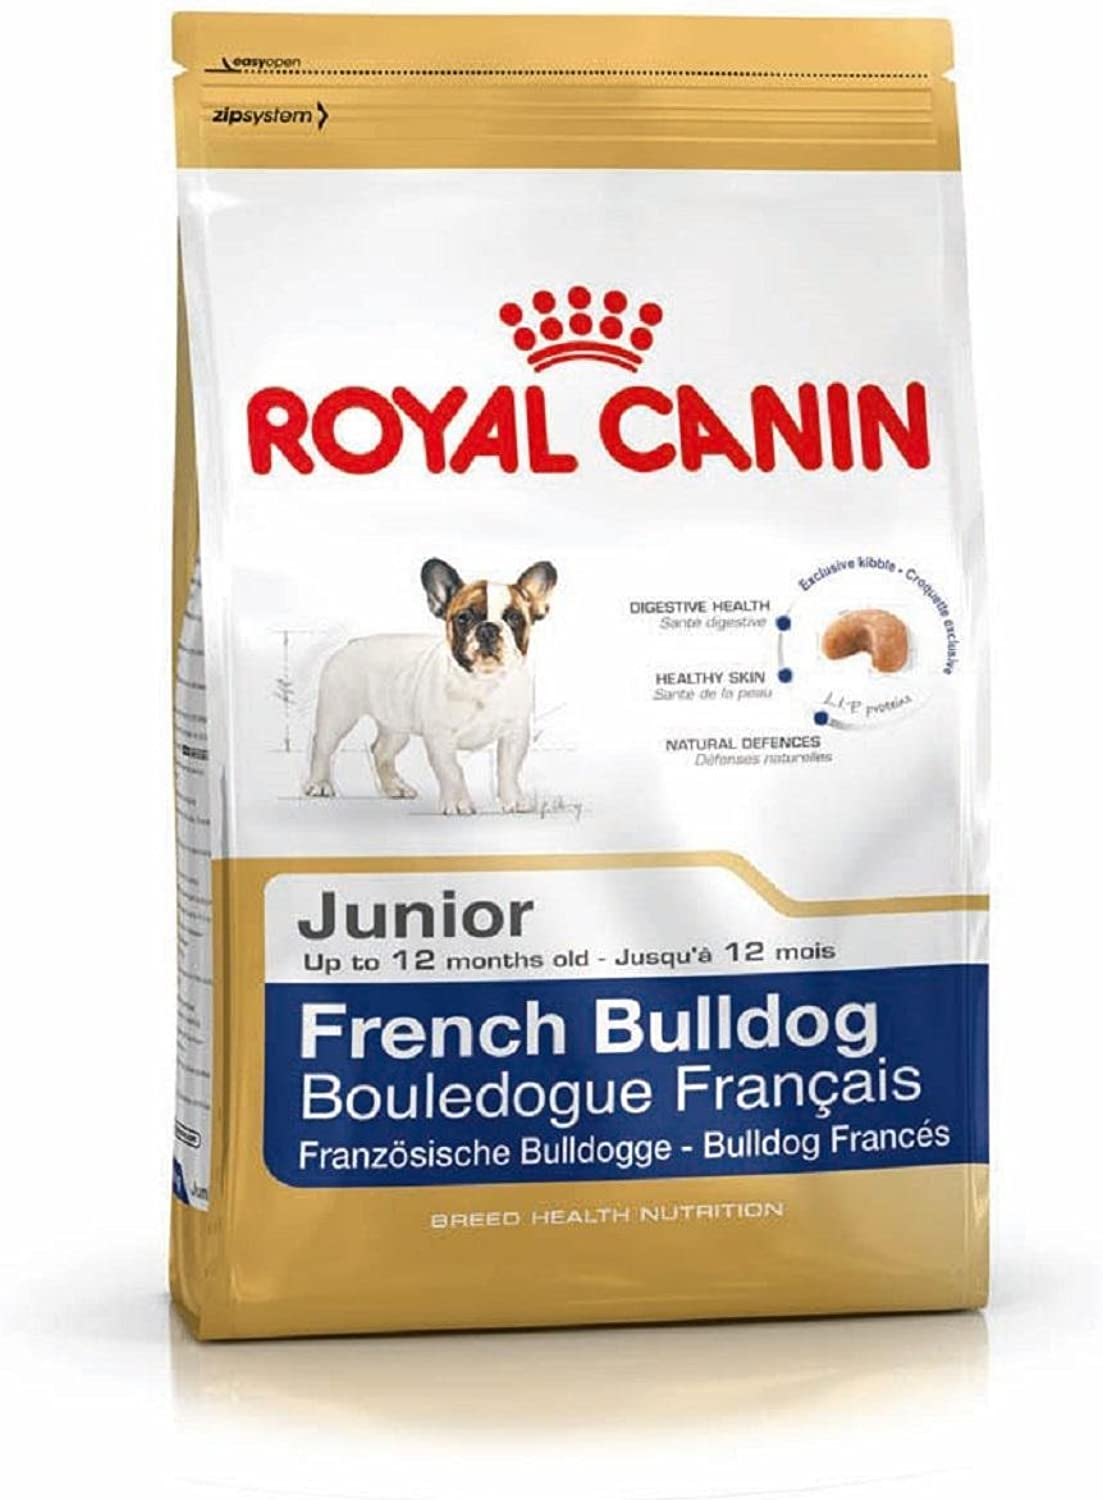 10KG ROYAL CANIN FRENCH BULLDOG JUNIOR DOG FOOD SUPPLIED BY MALTBY'S STORES